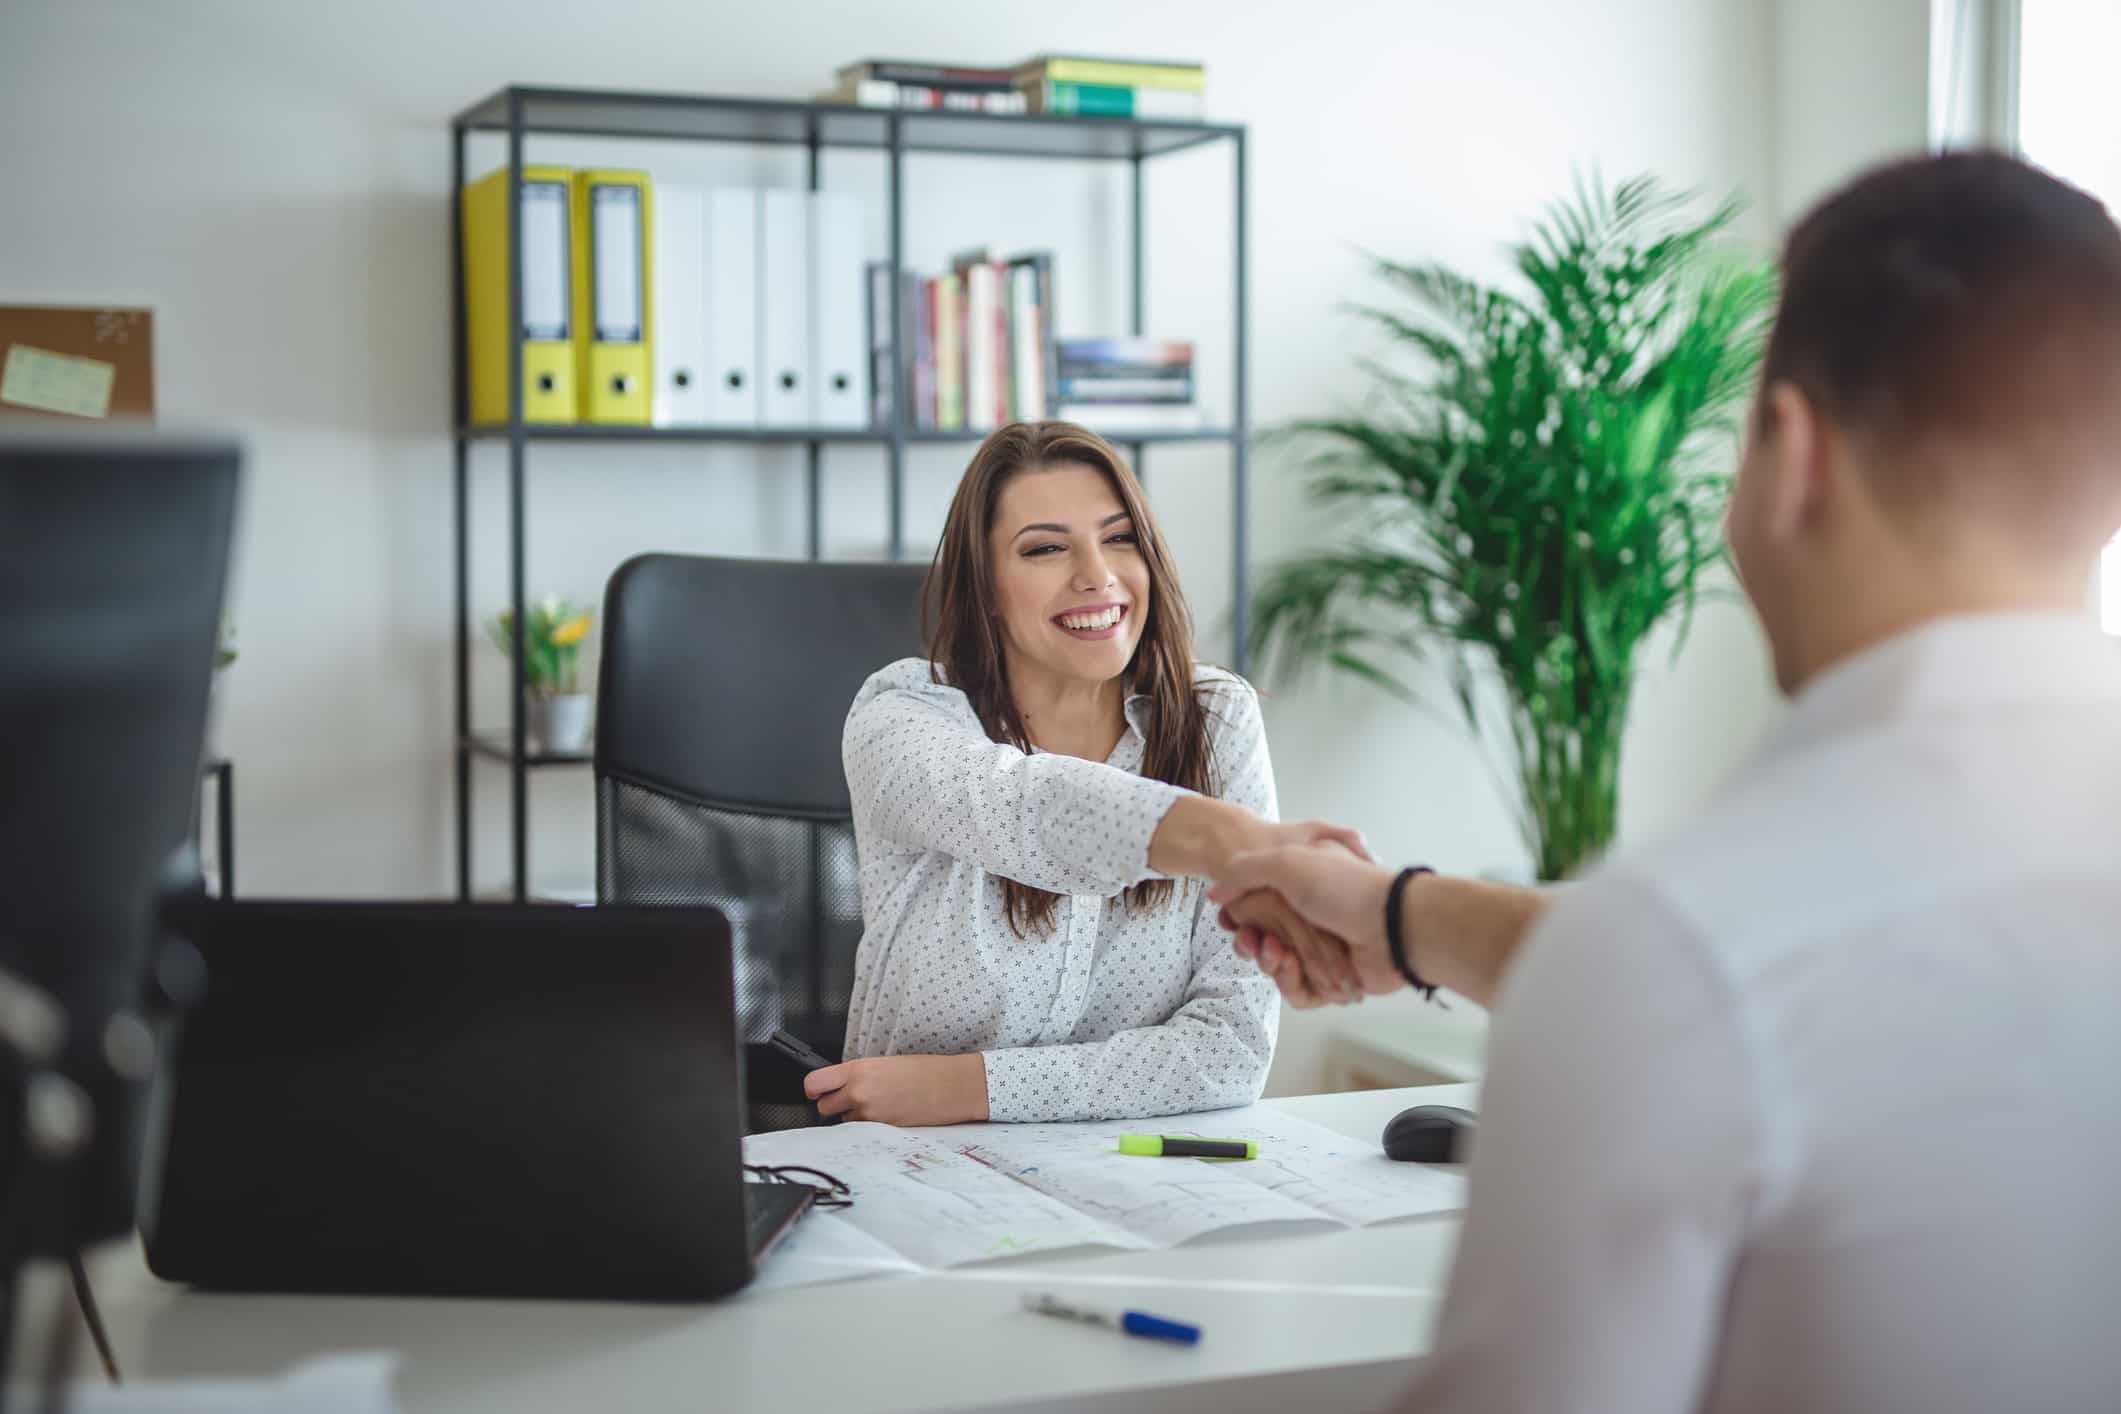 Six Great Questions to Ask Candidates During a Job Interview